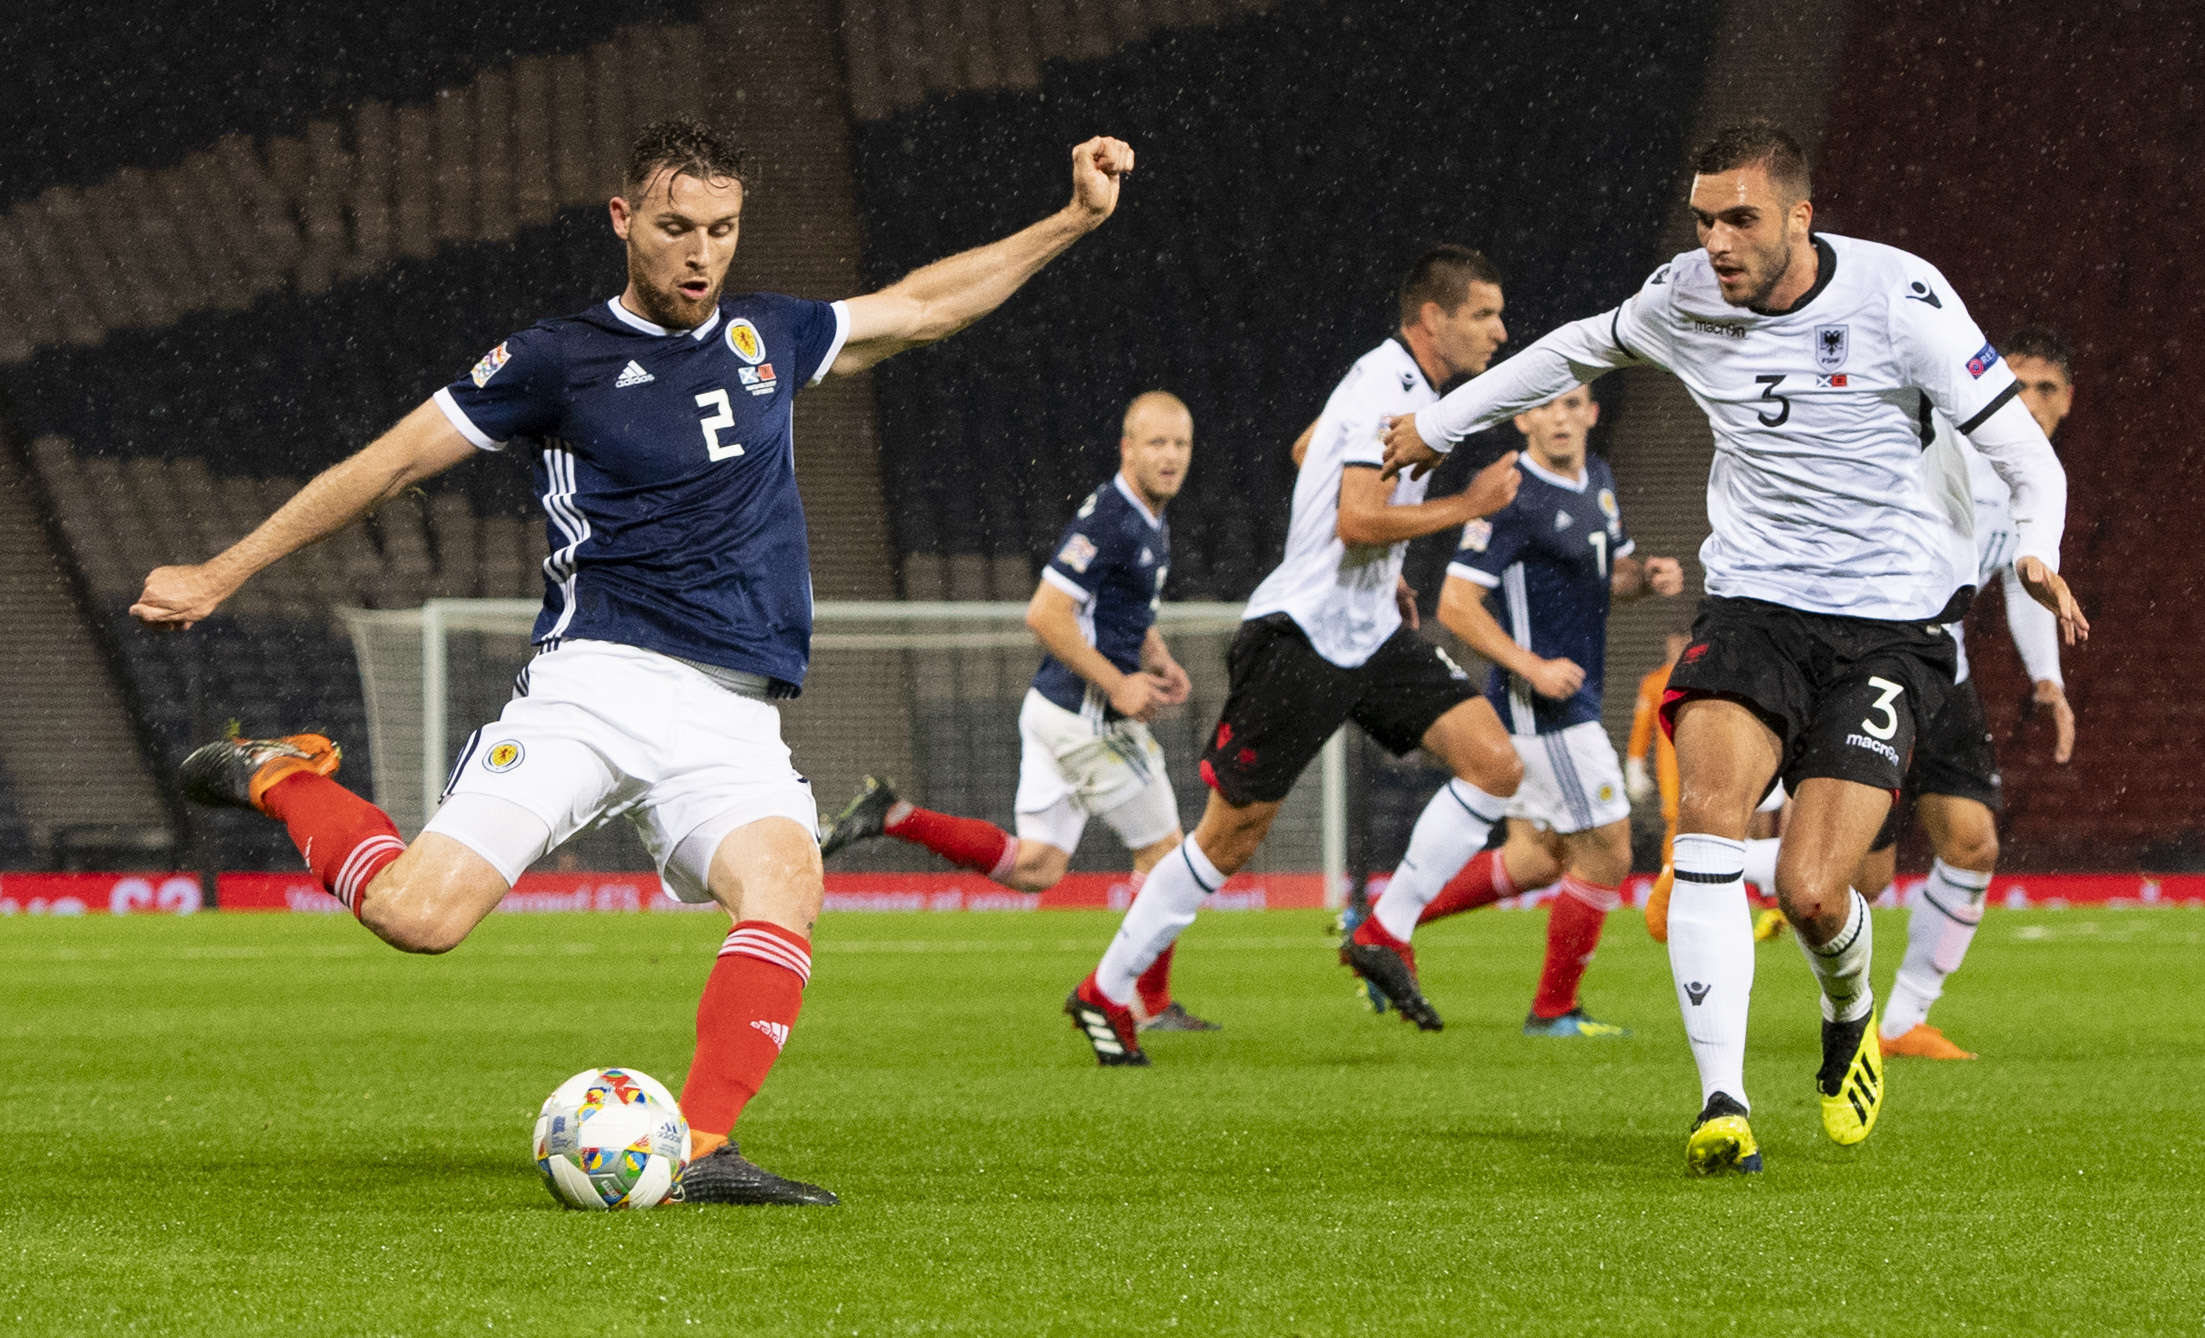 10/09/18 UEFA NATIONS LEAGUE . SCOTLAND v ALBANIA (2-0) . HAMPDEN PARK - GLASGOW. Stephen O'Donnell in action for Scotland.